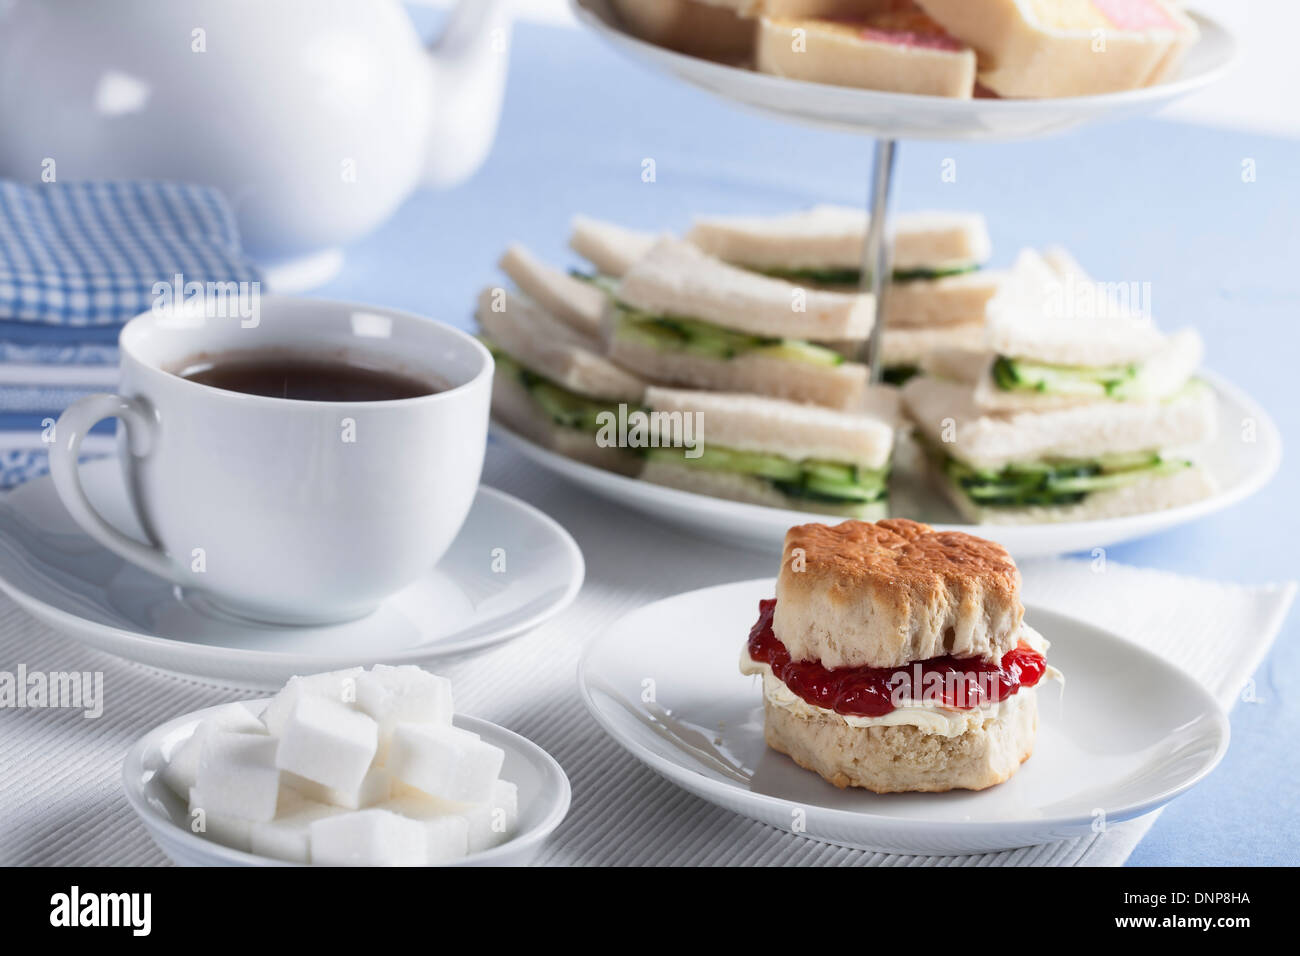 Cup of tea with sugar cubes and scones, cucumber sandwiches in the background - Stock Image